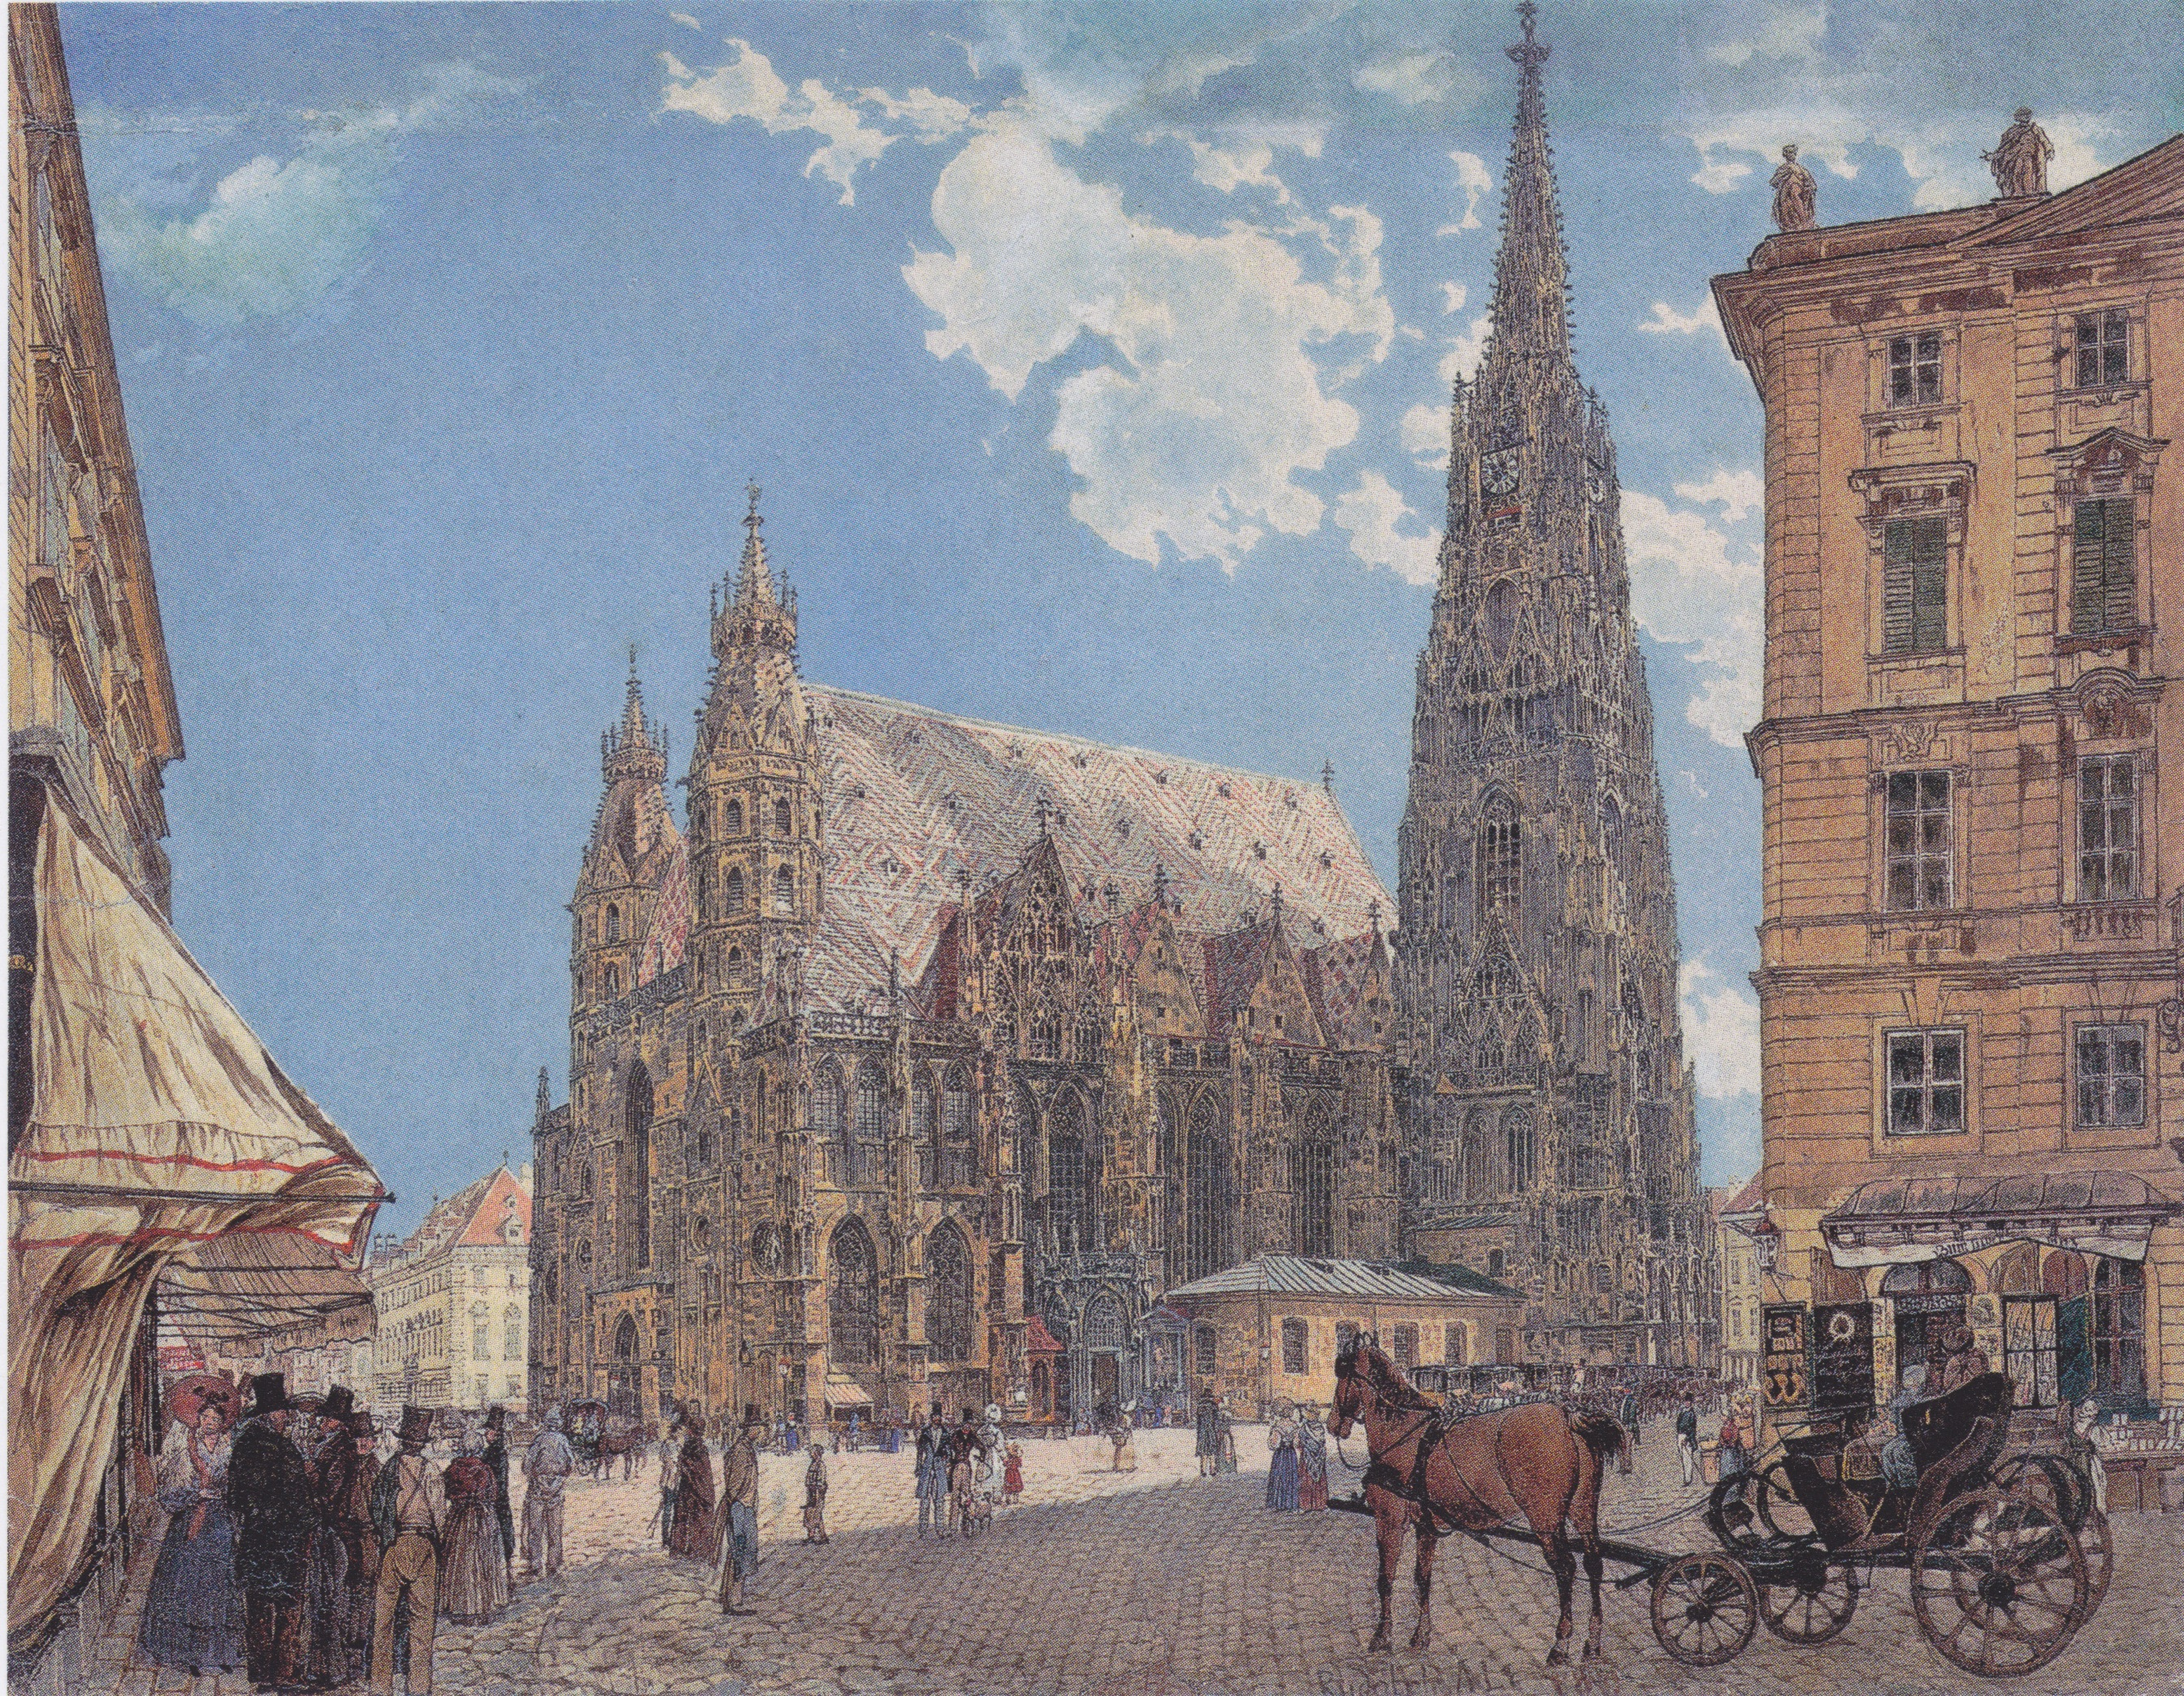 The St. Stephen's Cathedral in Vienna, 1831